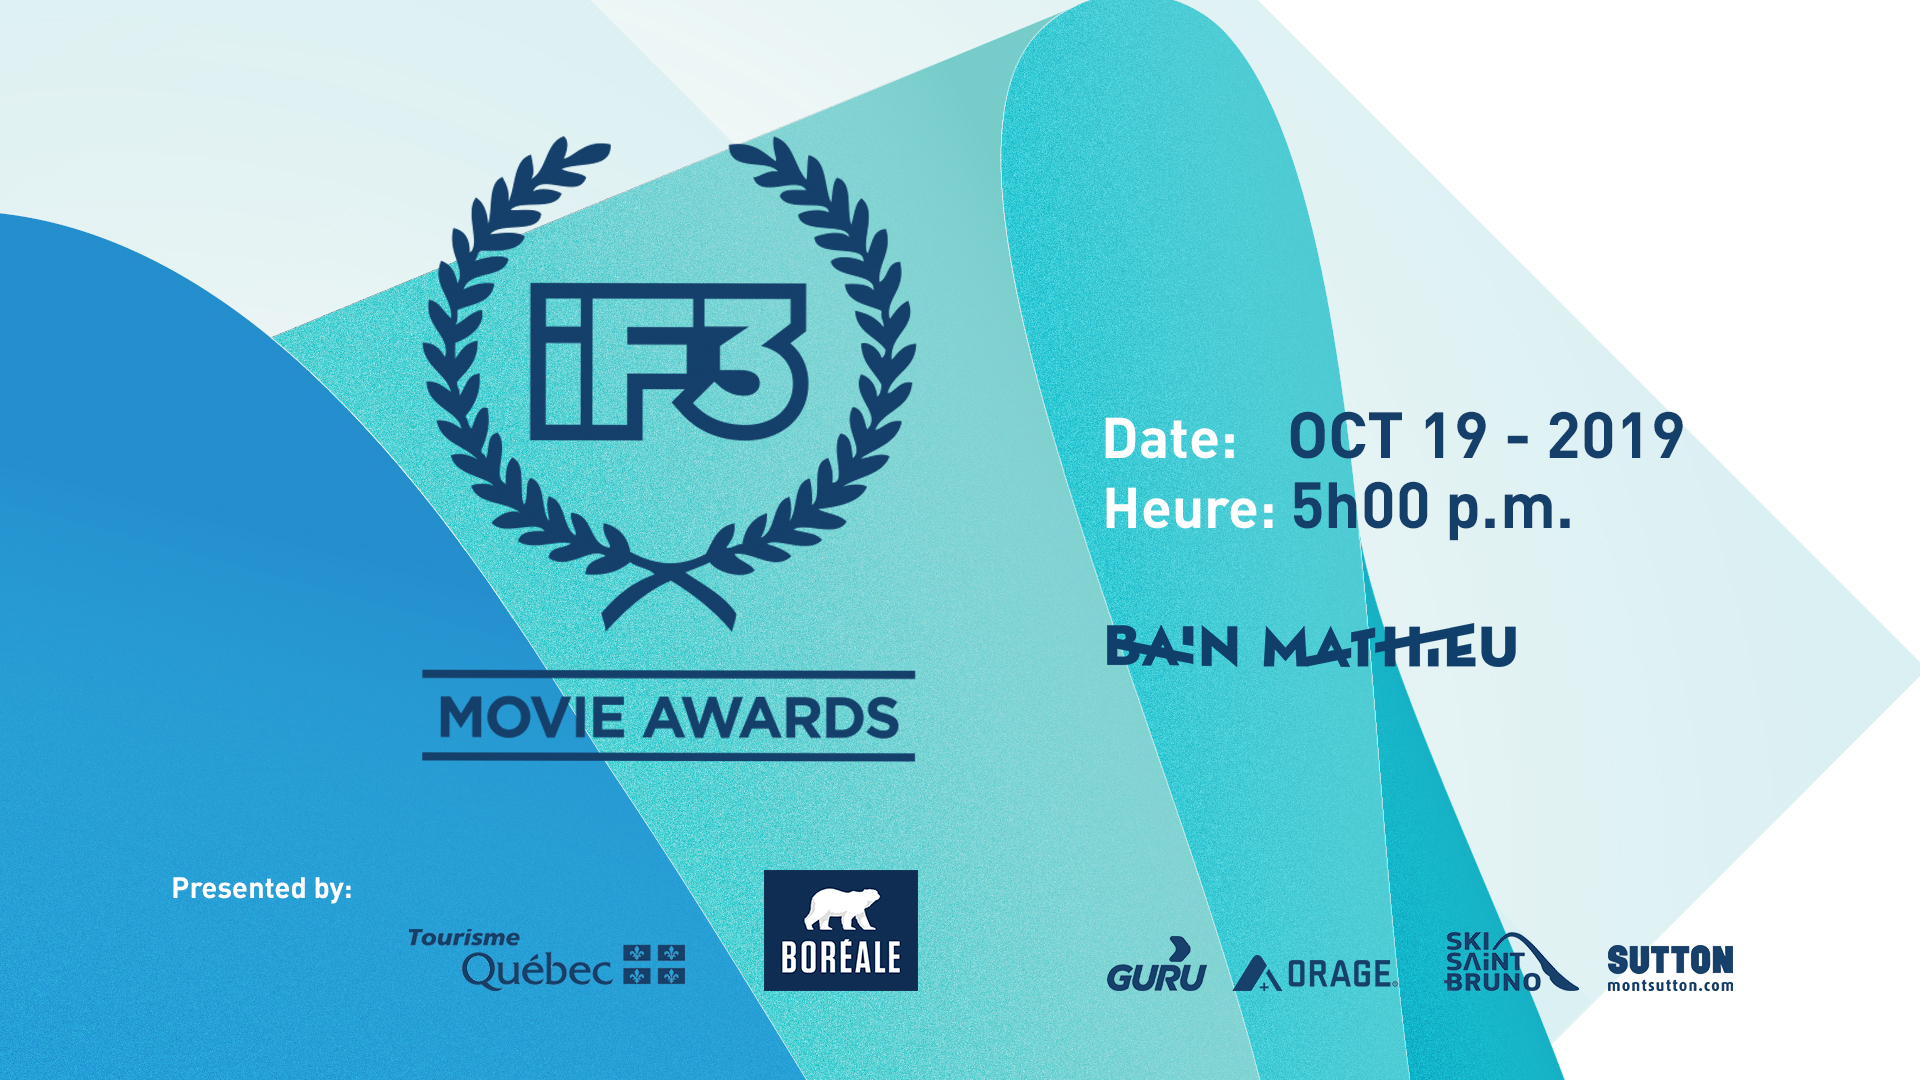 The official selection for the iF3 Movie Awards 2019!